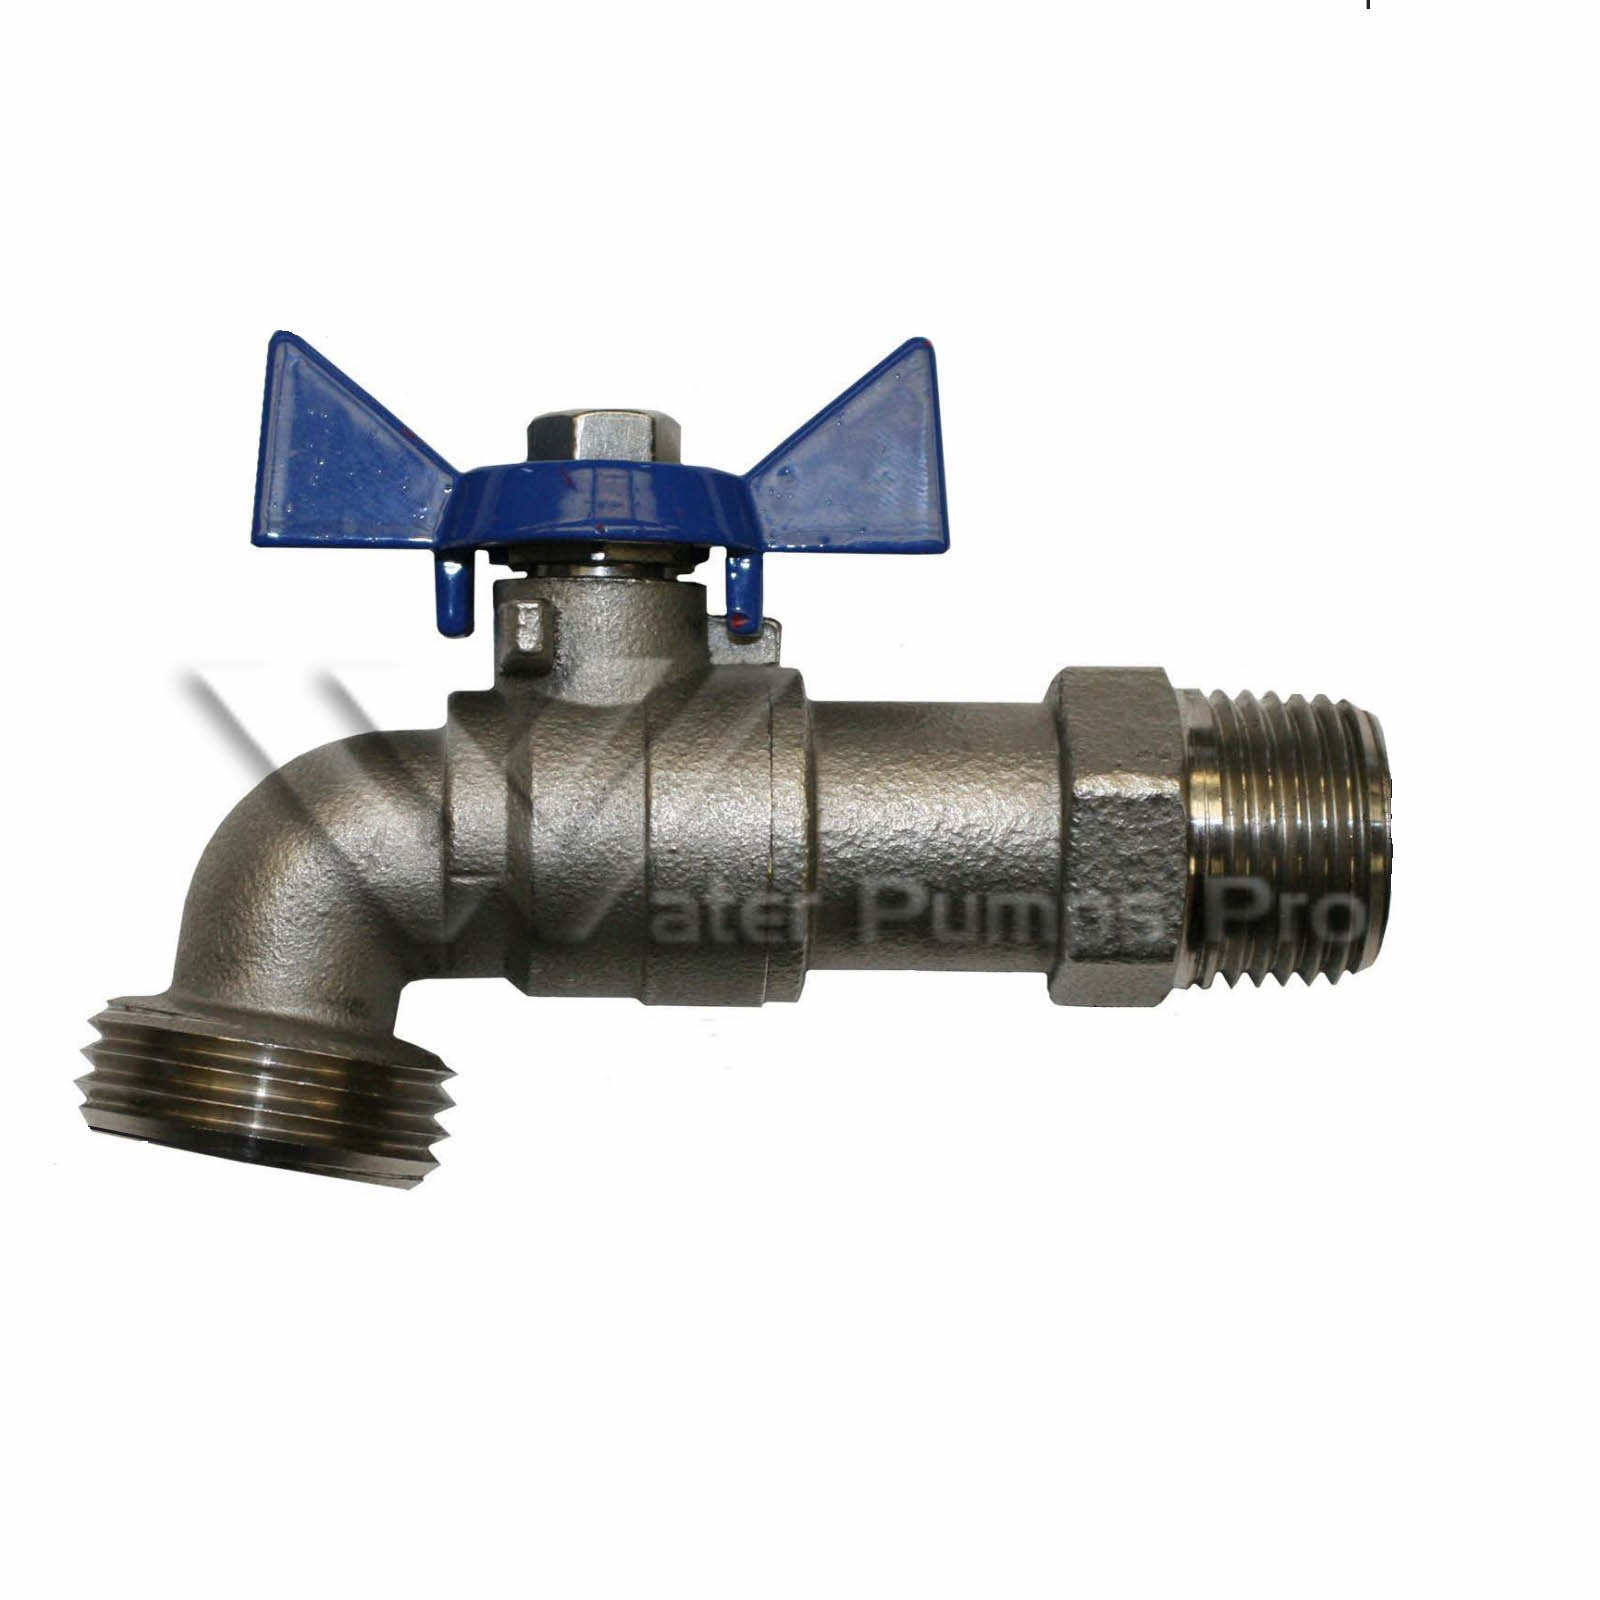 "Merrill SSBD50 1/2"" Stainless Steel Boiler Drain with Hose Bibb"